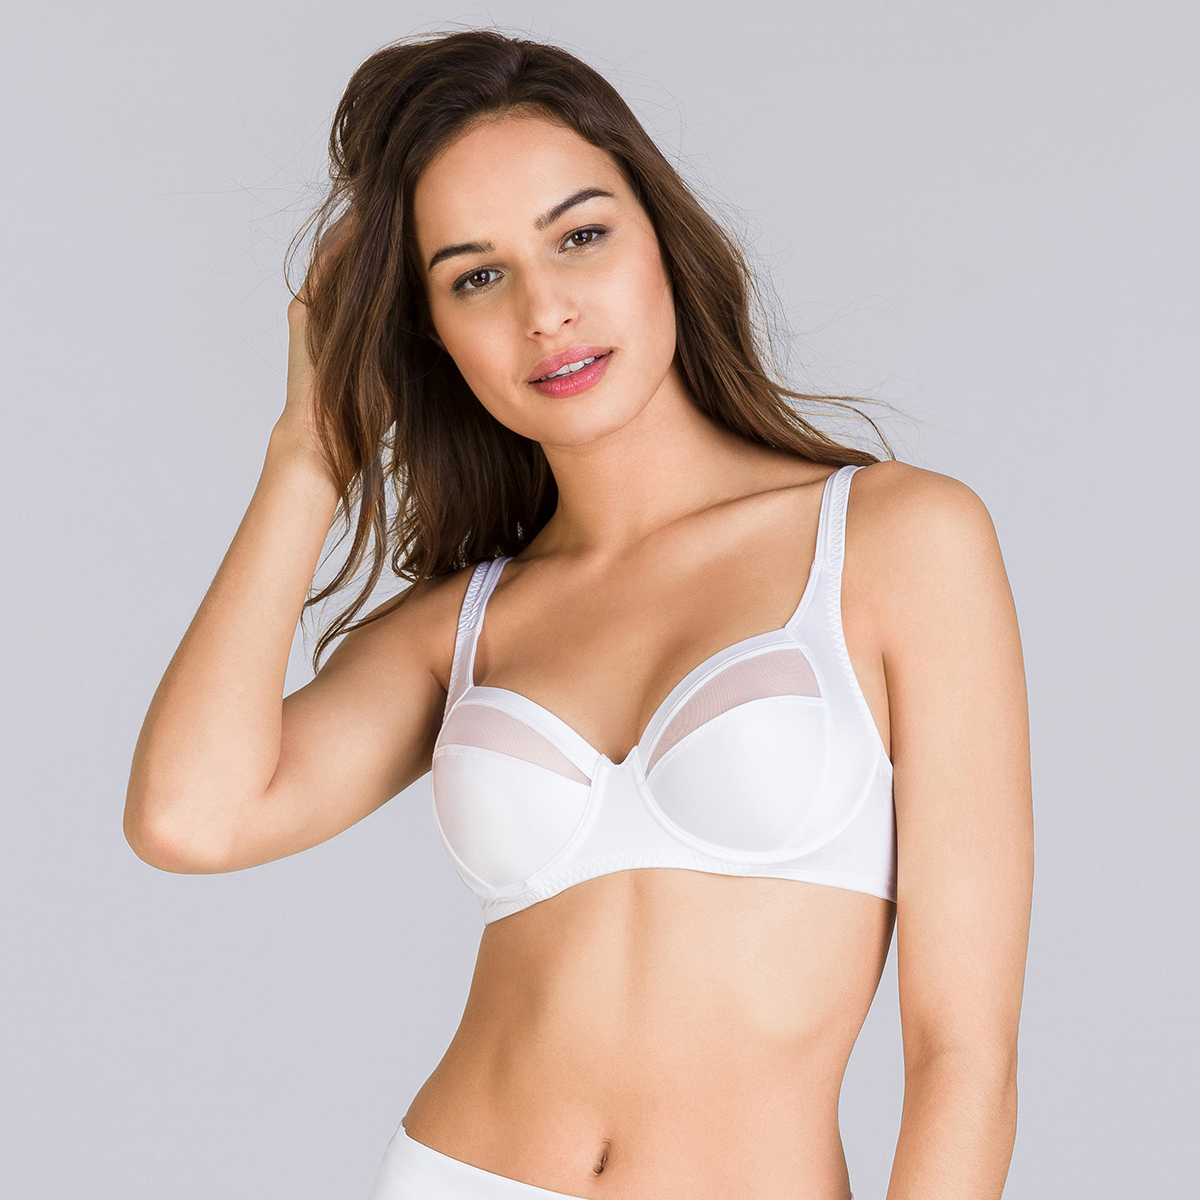 Soutien-gorge emboîtant tulle blanc Perfect Silhouette, , PLAYTEX